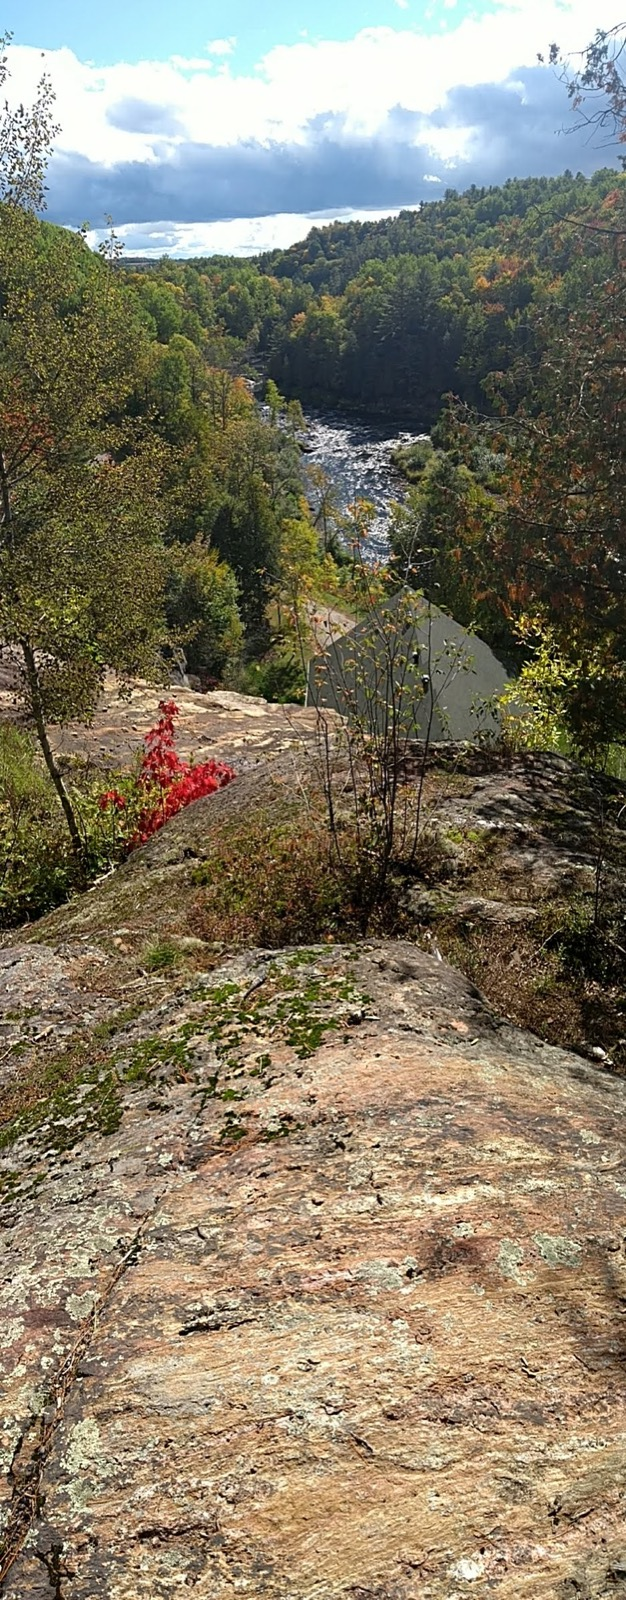 Portrait panorama - red leaves, rock and water